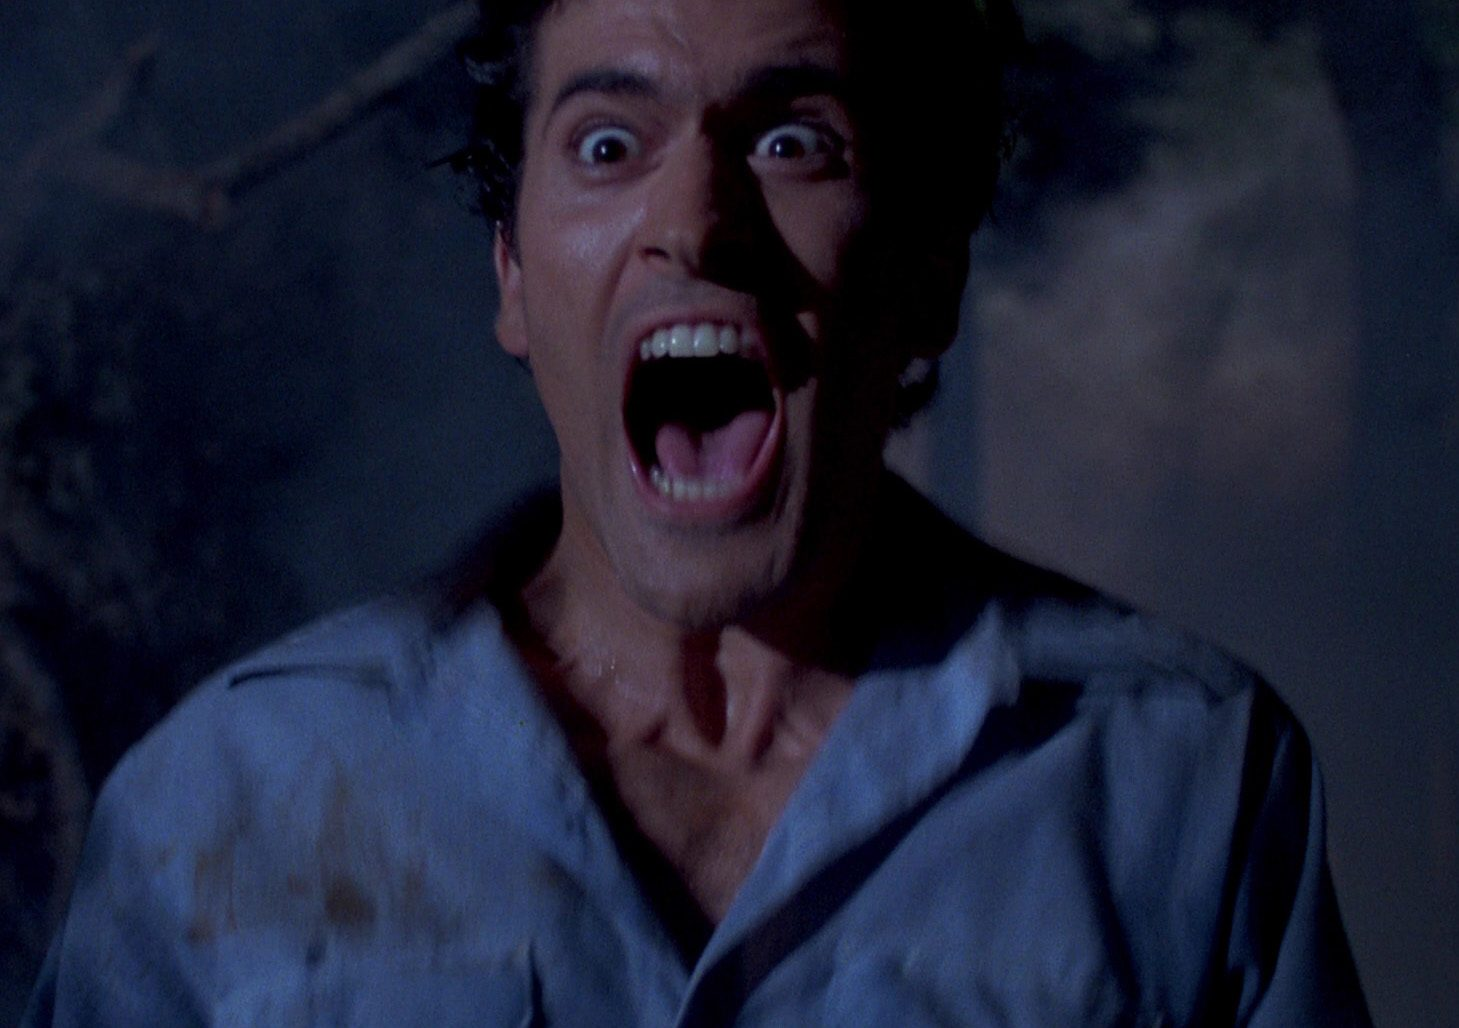 evil dead 2 pic 1 e1617264276992 20 Horror Movies That Defined The 1980s